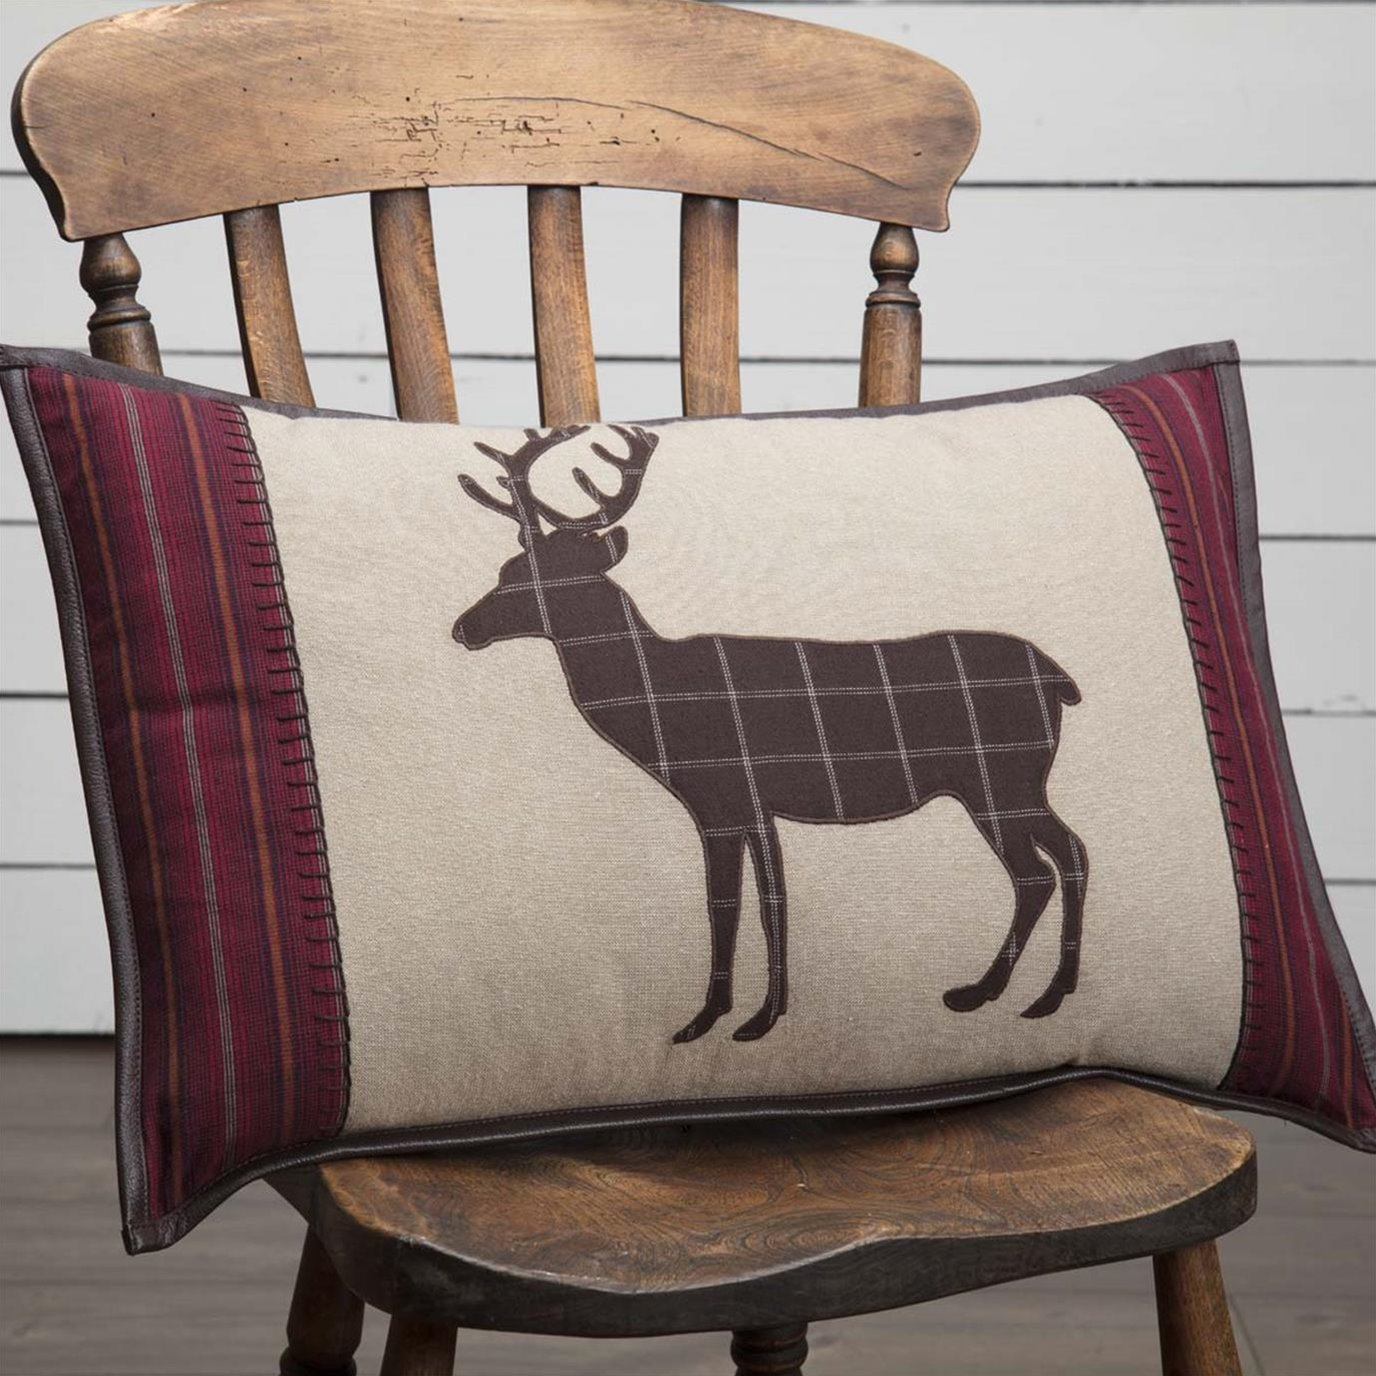 Wyatt Deer Applique Pillow 14x22